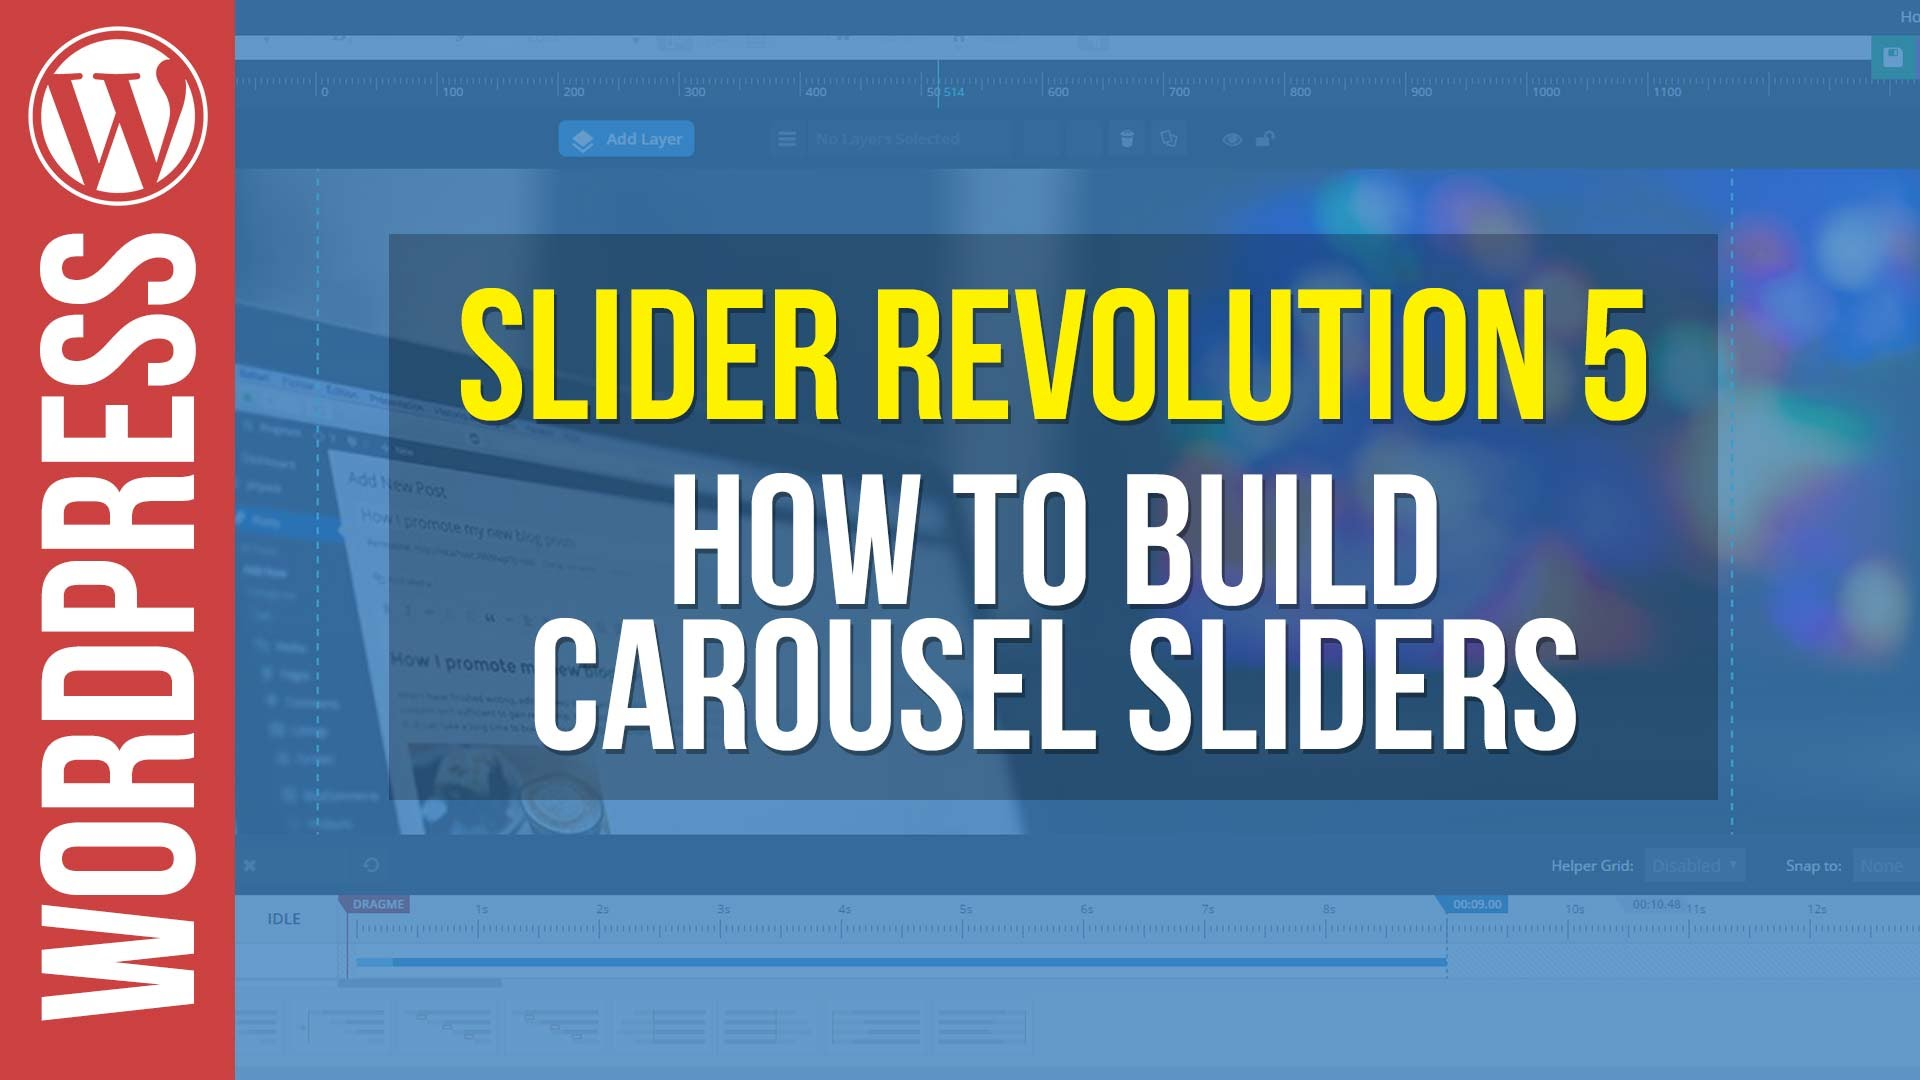 Slider Revolution 5 for WordPress – Carousel Slider Tutorial